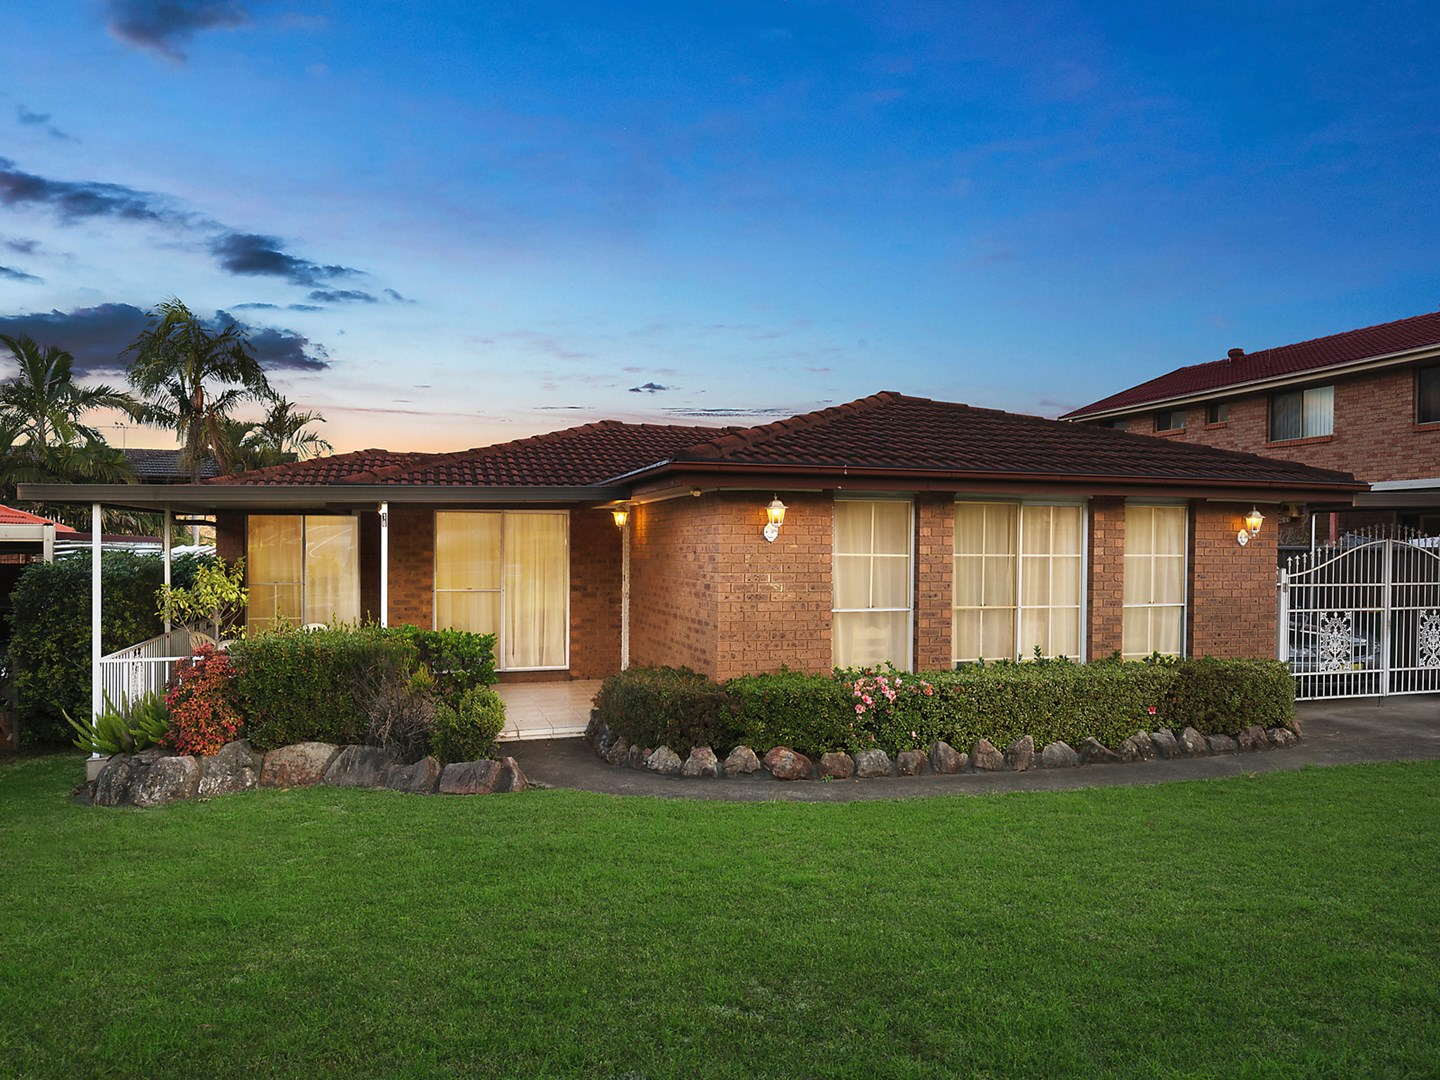 For Sale, price  guide $700,000  - $750,000